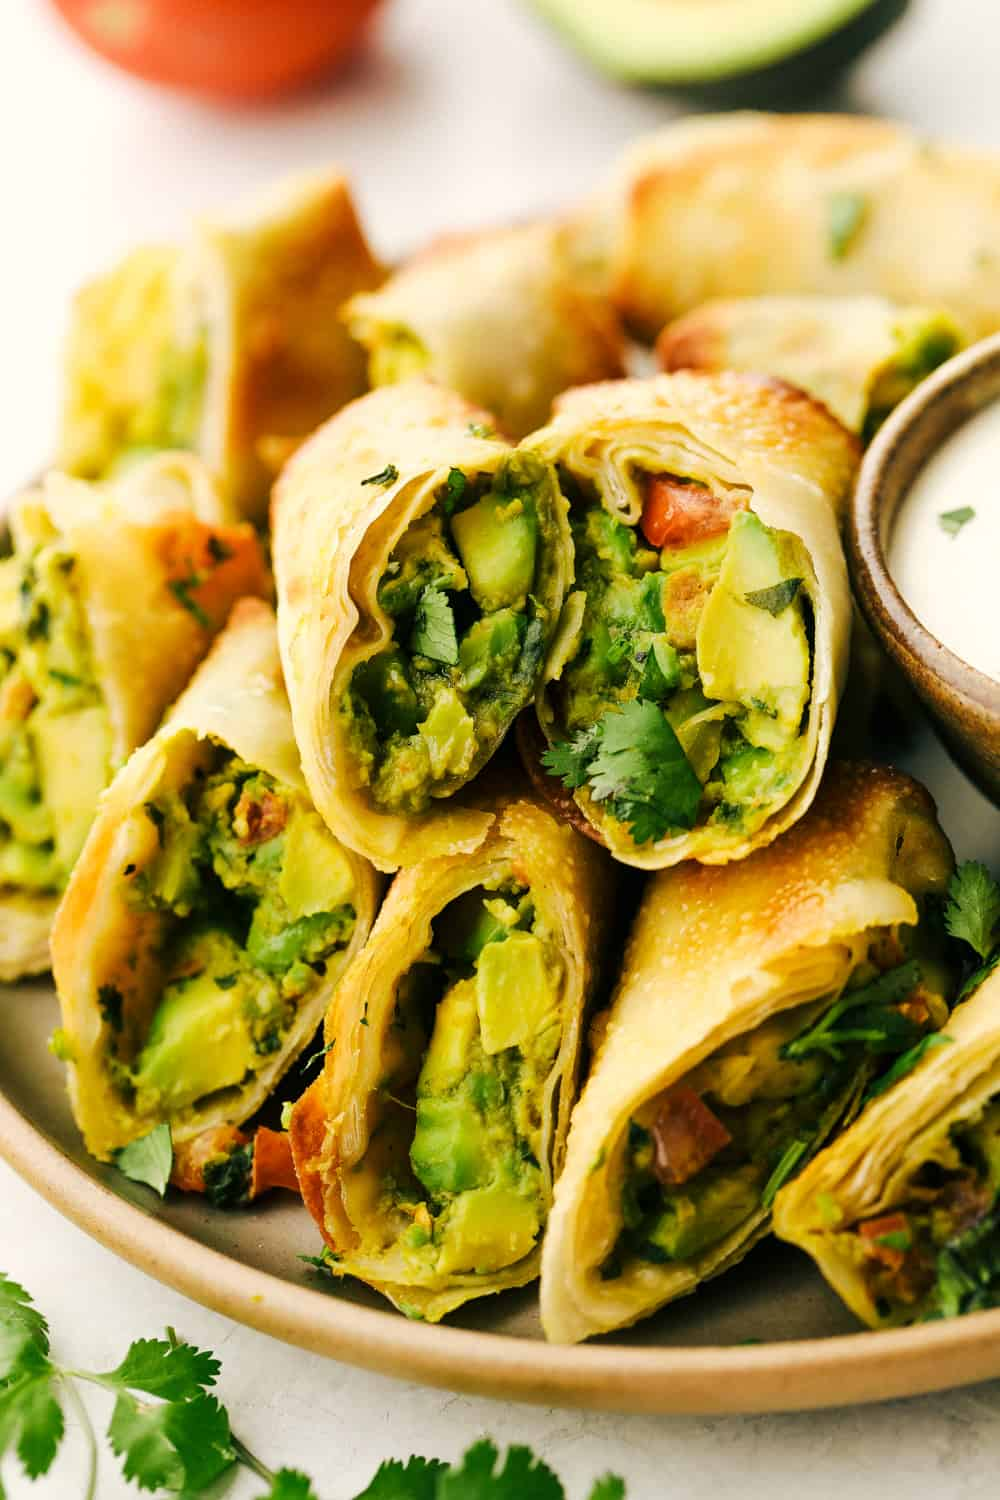 Avocado egg rolls split and layered on a plate.